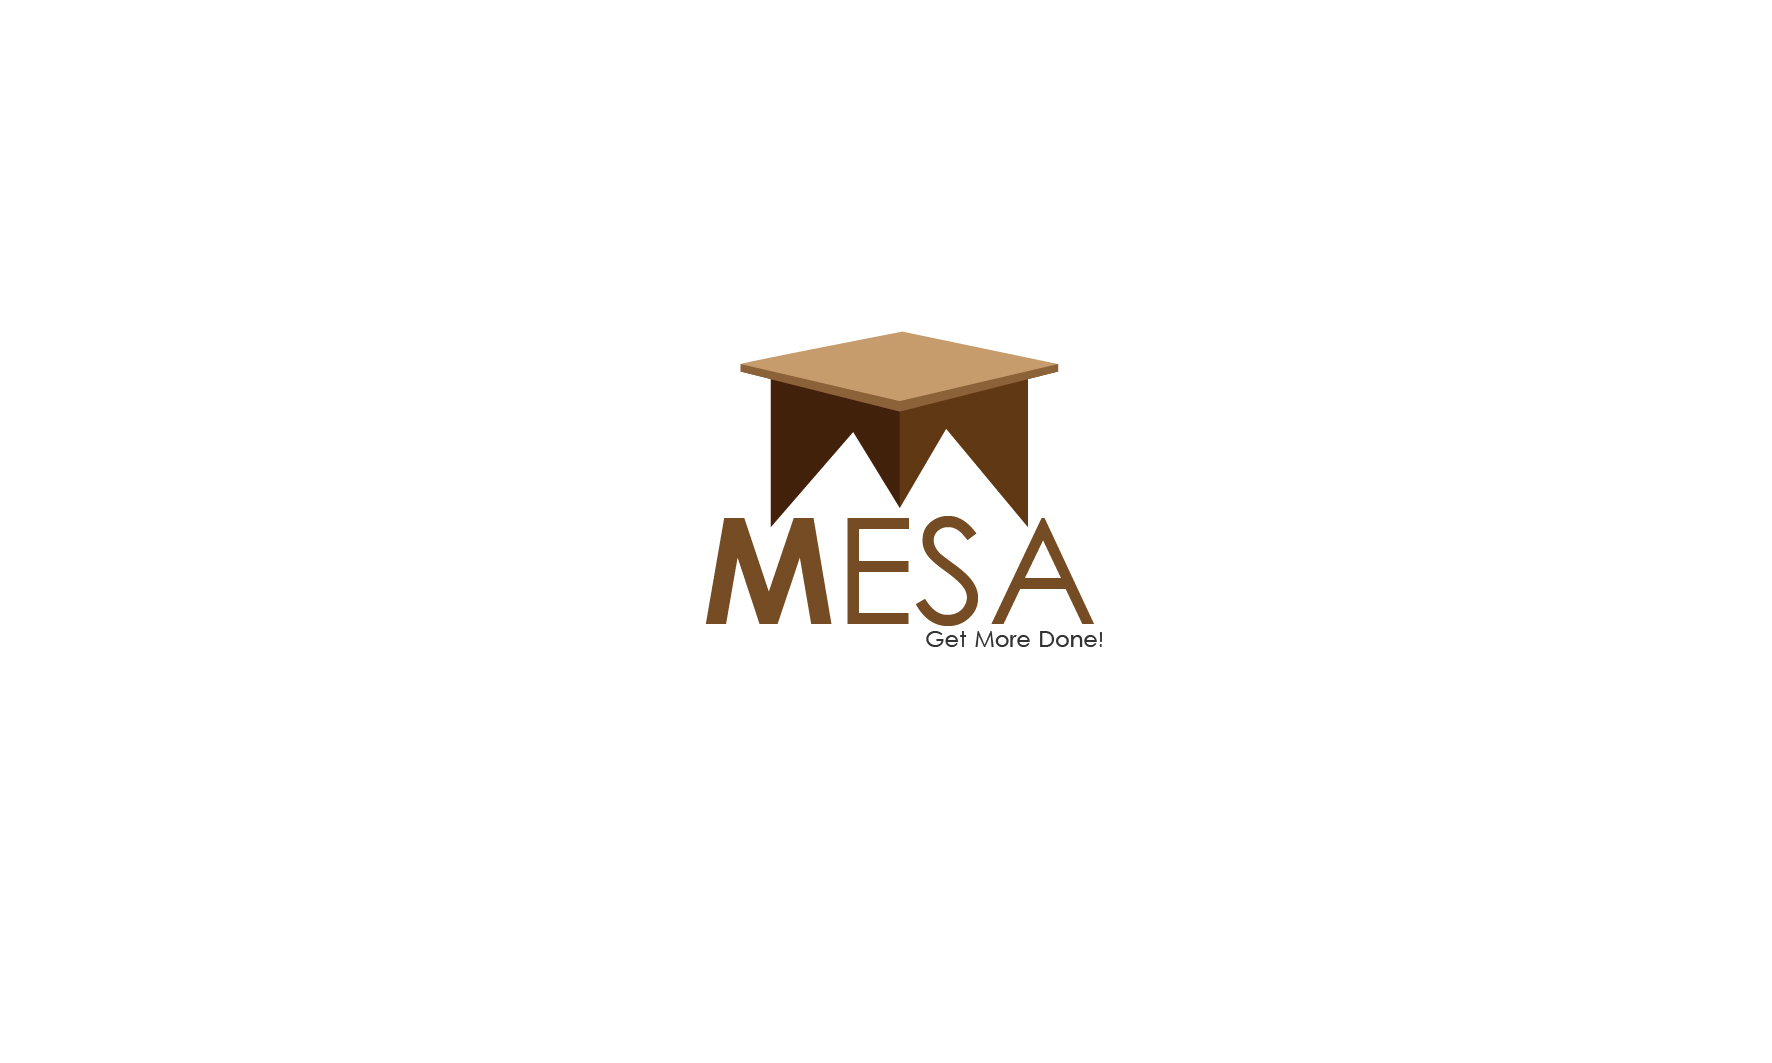 Logo Design by 3draw - Entry No. 156 in the Logo Design Contest Logo Design for Mesa.